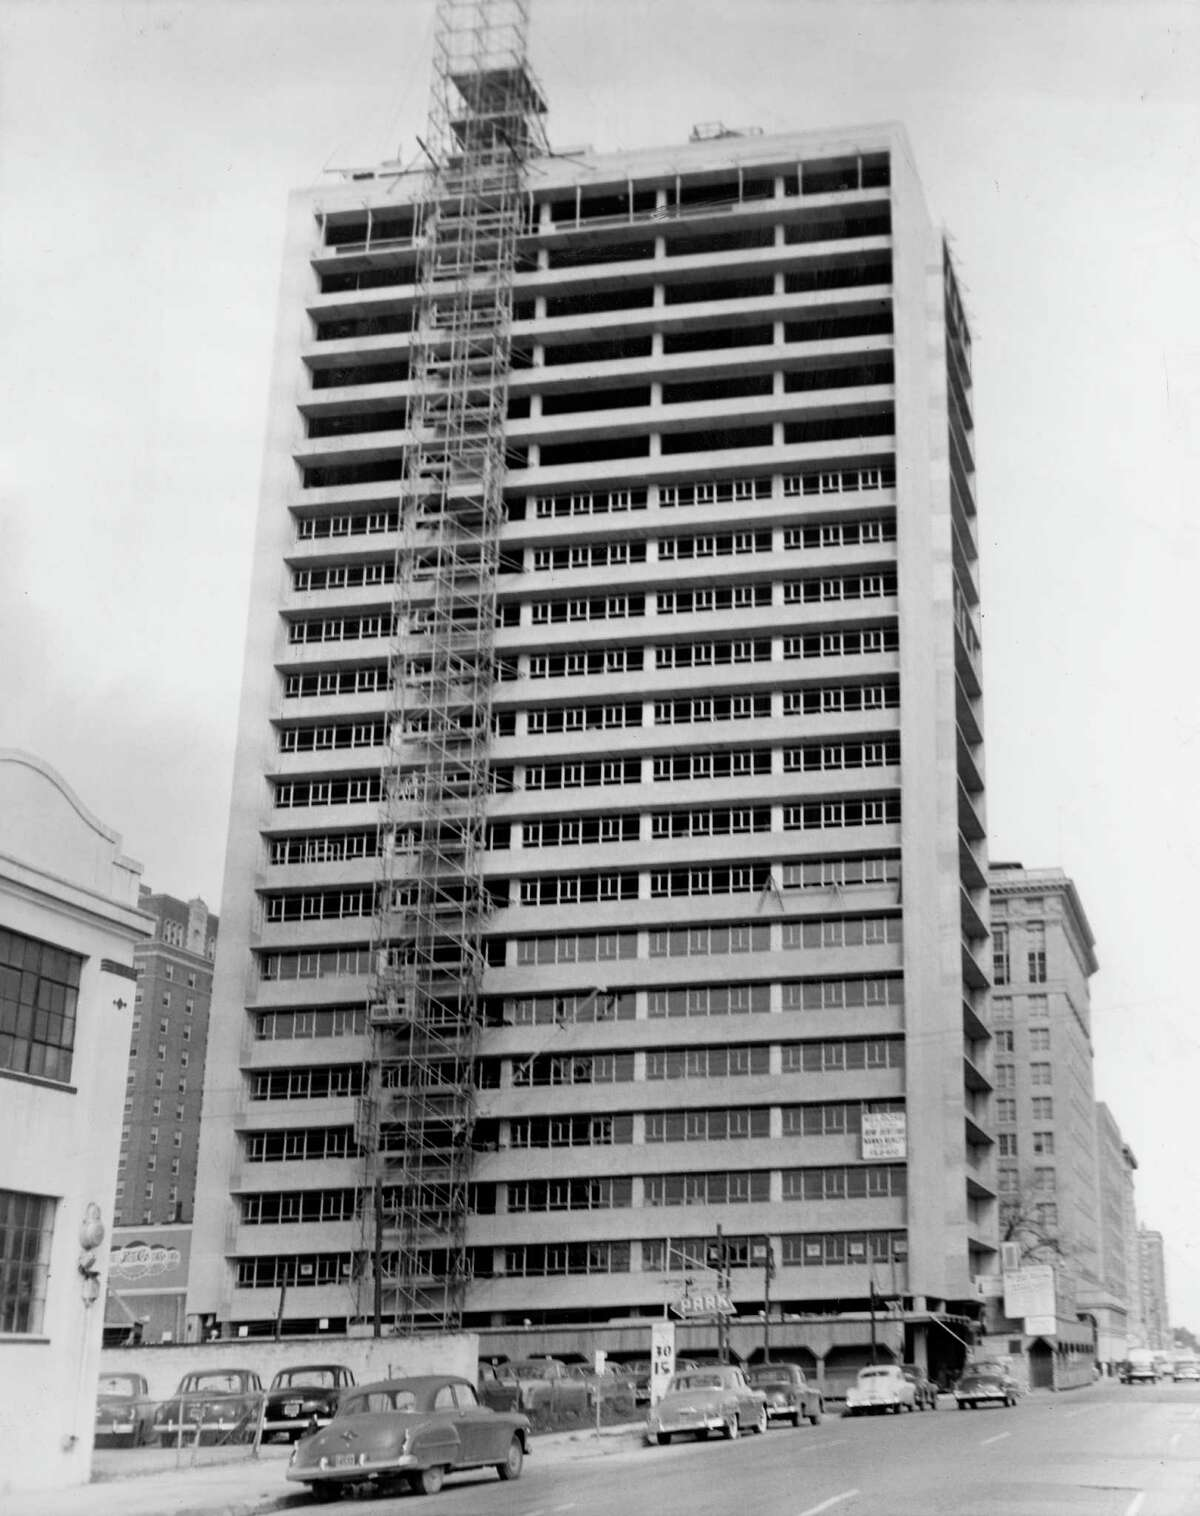 12/1951 - This unconventional skycraper, which at a distance will be silvery in tone, is the nearly completed Melrose Building, being built by Melvin A. Silverman, developer, and his New York associate, Bennett Rose. Tellepsen Construction Company is the contractor. The cost is more than $4,000,000 and completion is scheduled for February.